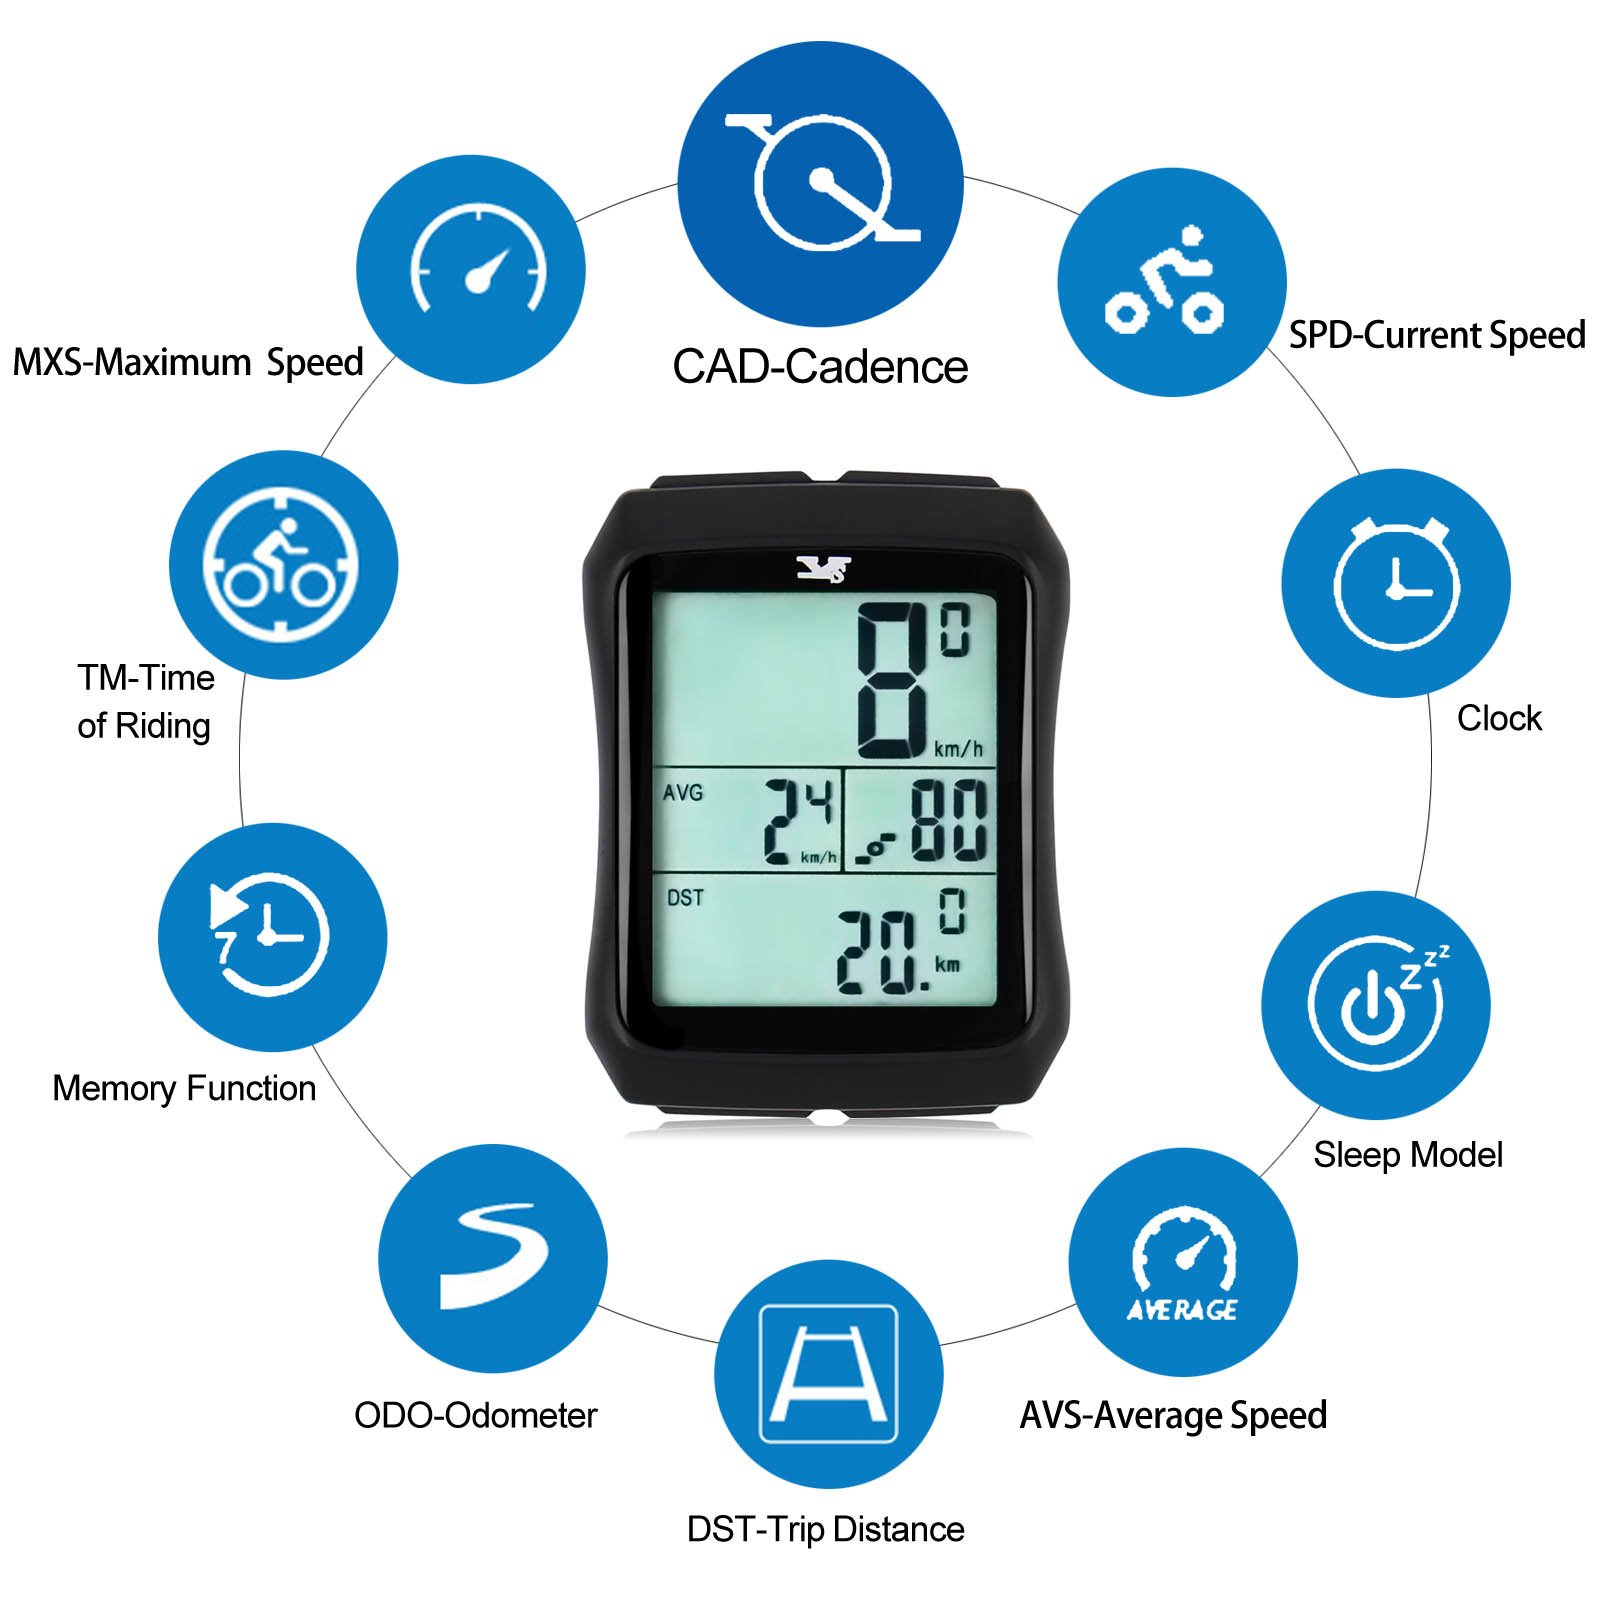 007KK Bike Speedometer Waterproof Wireless Bicycle Bike Computer and Odometer with Cadence Sensor for Outdoor Cycling and Fitness by 007KK (Image #3)